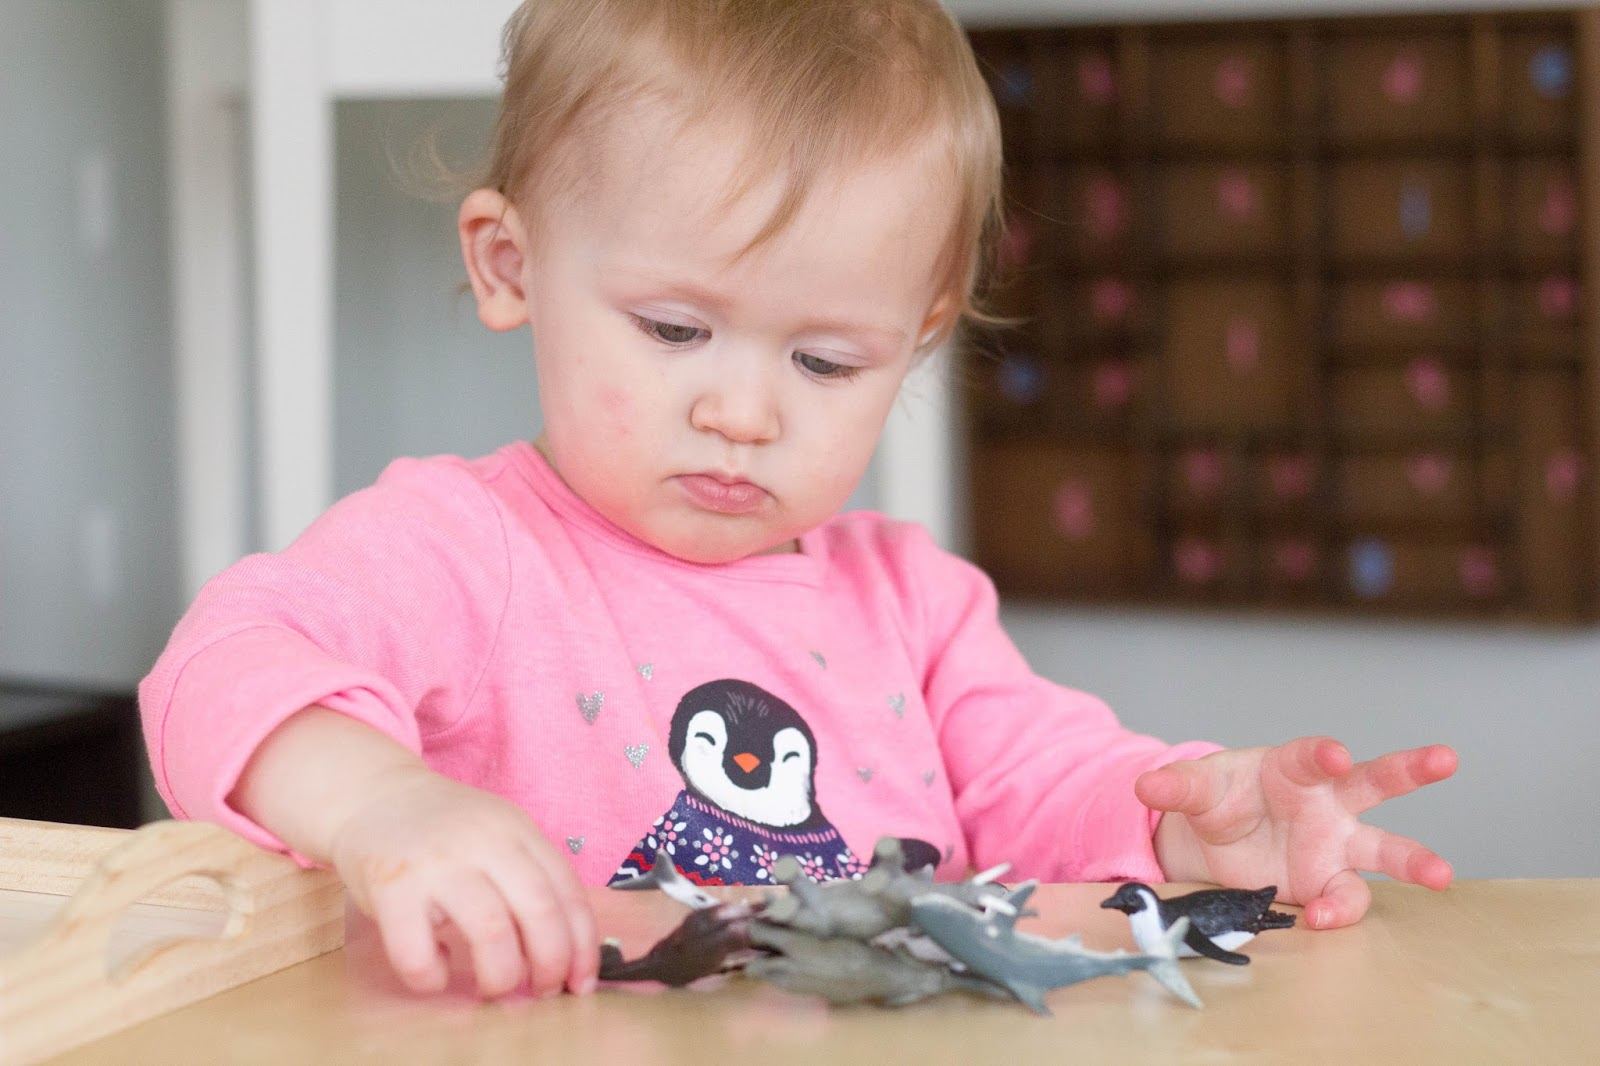 Montessori friendly activities for toddlers A to Z!